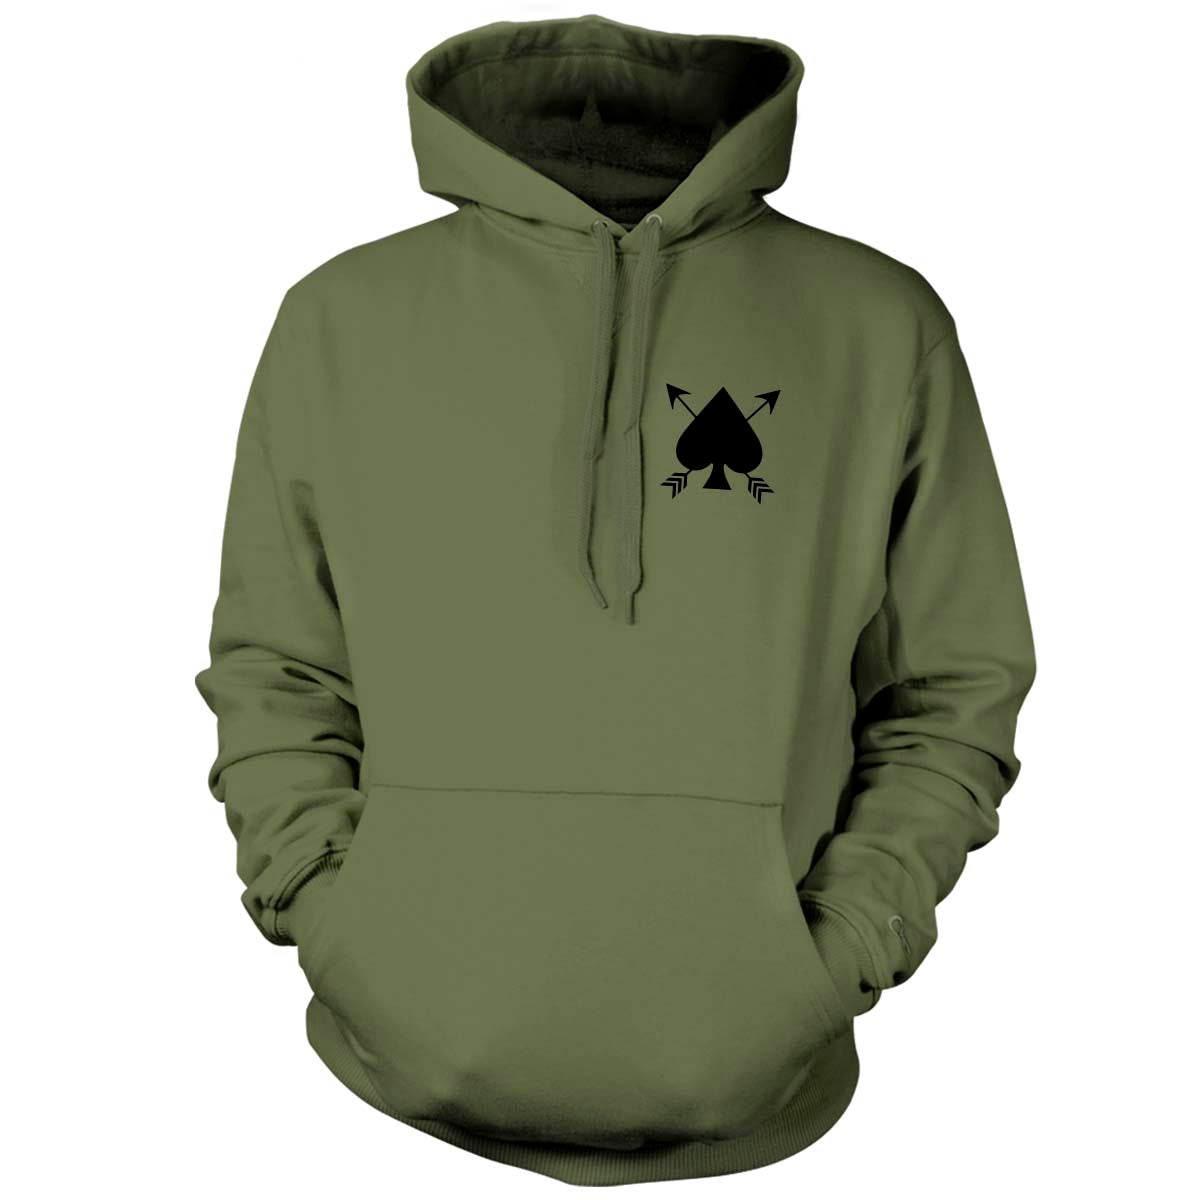 Robert 'Bobby' Needham - Memorial Hoodie - Military Green - Hoodies - Pipe Hitters Union